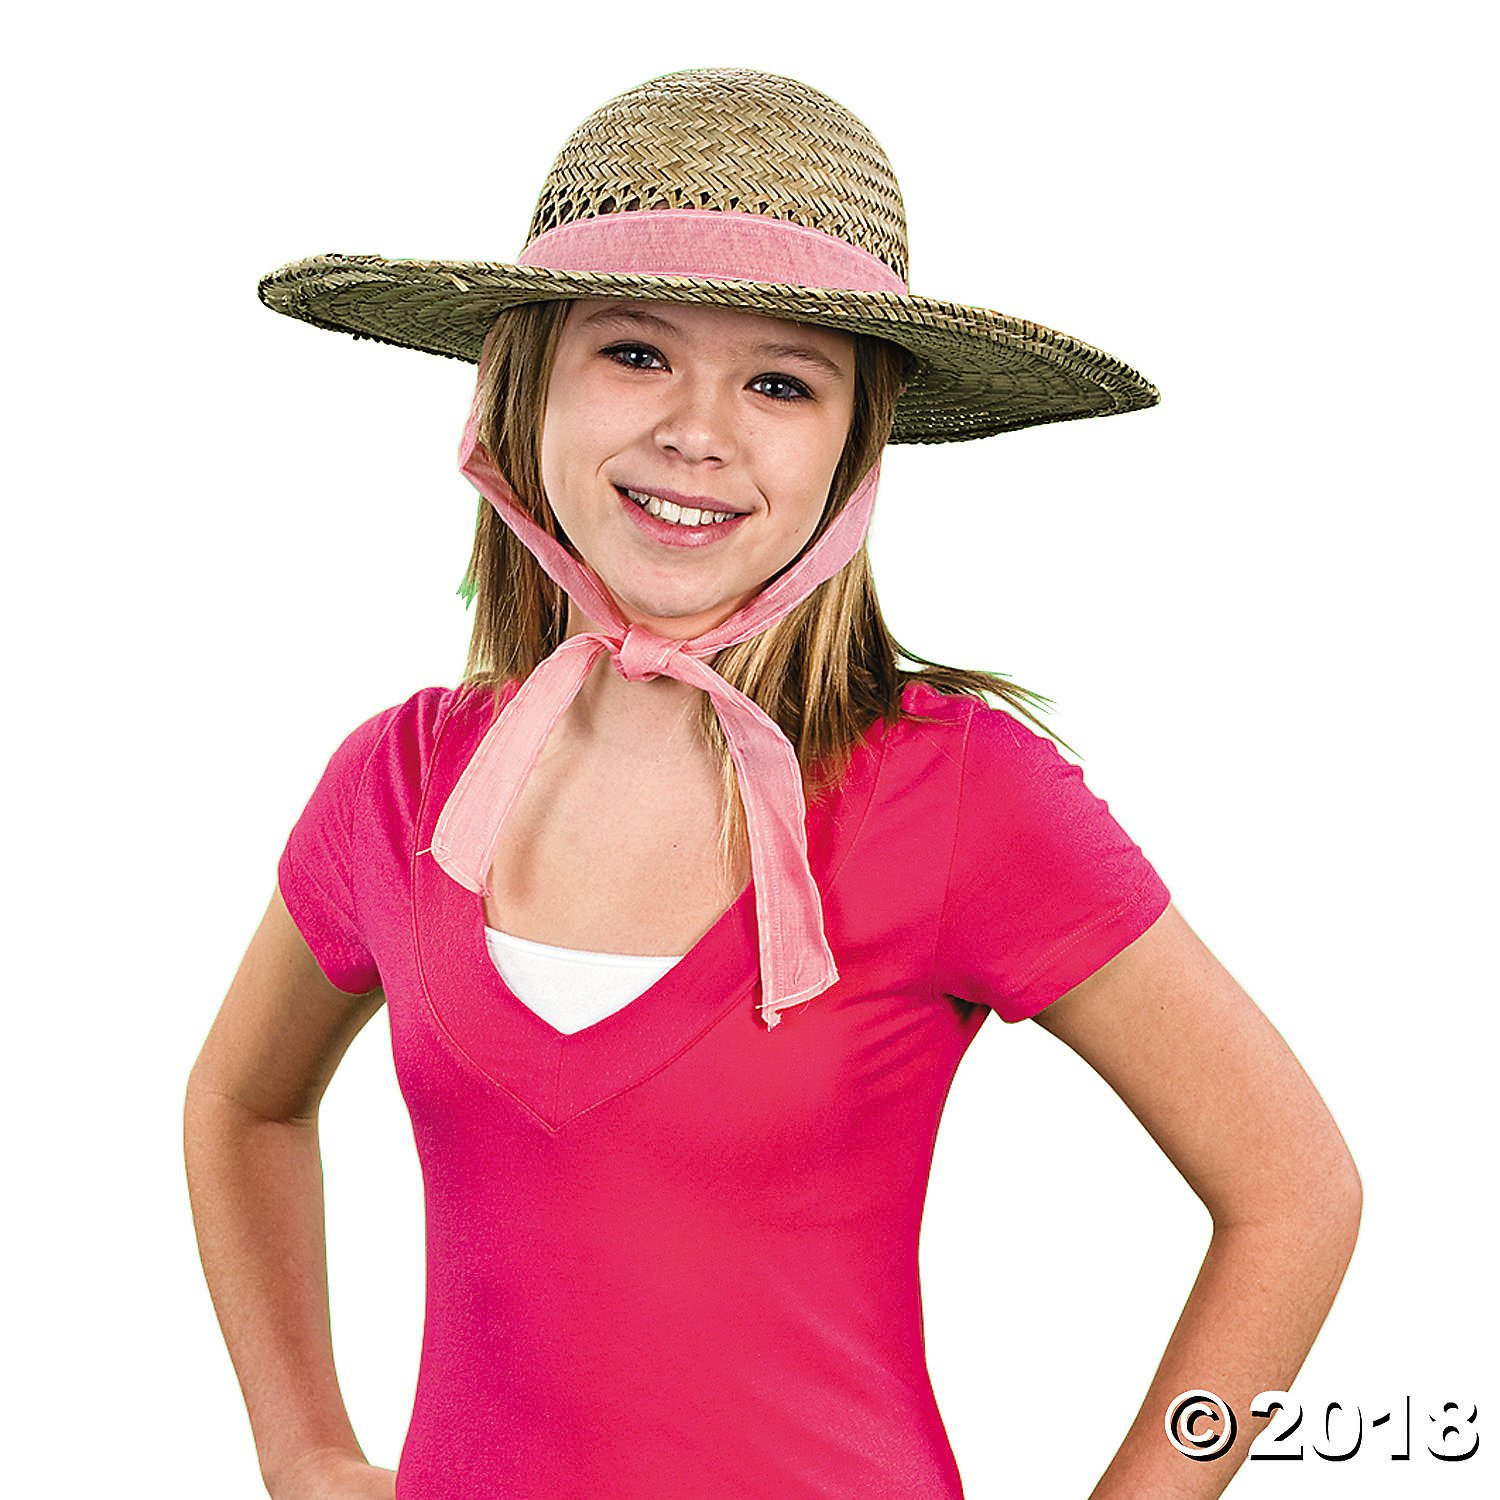 Straw Sun Hats With Solid Band (6 hats) [Toy]